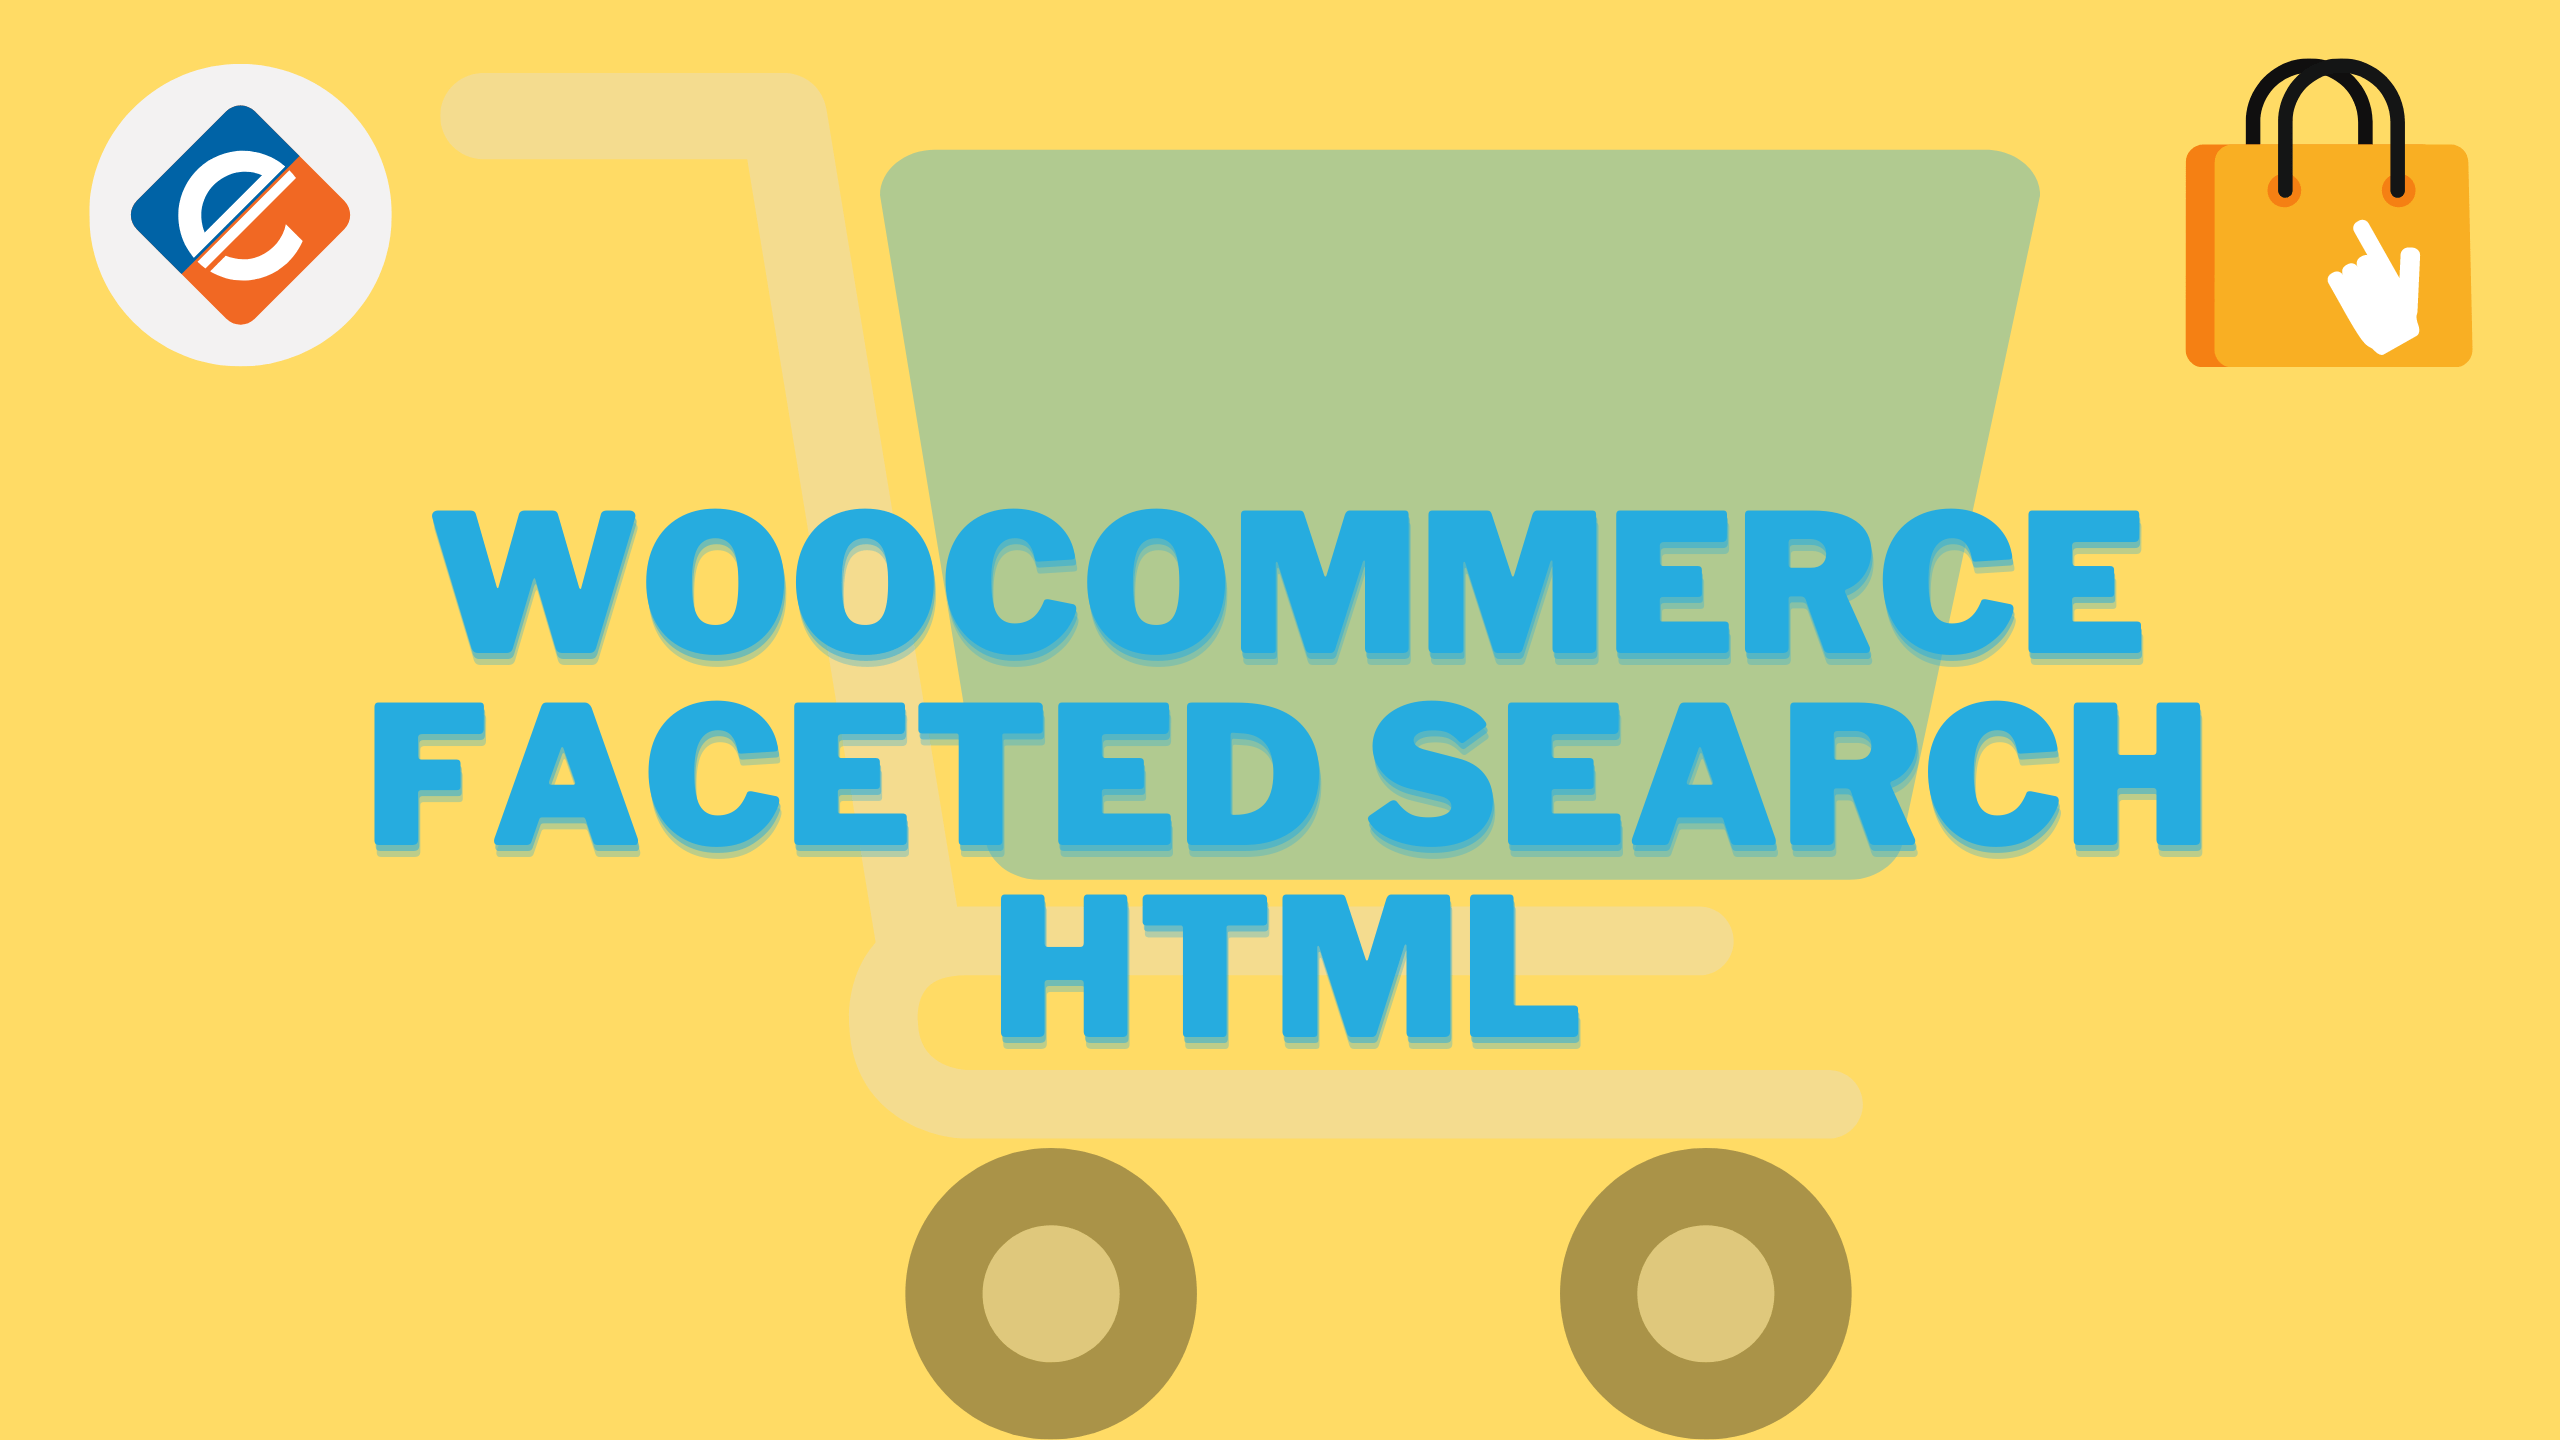 Woocommerce Faceted Search HTML